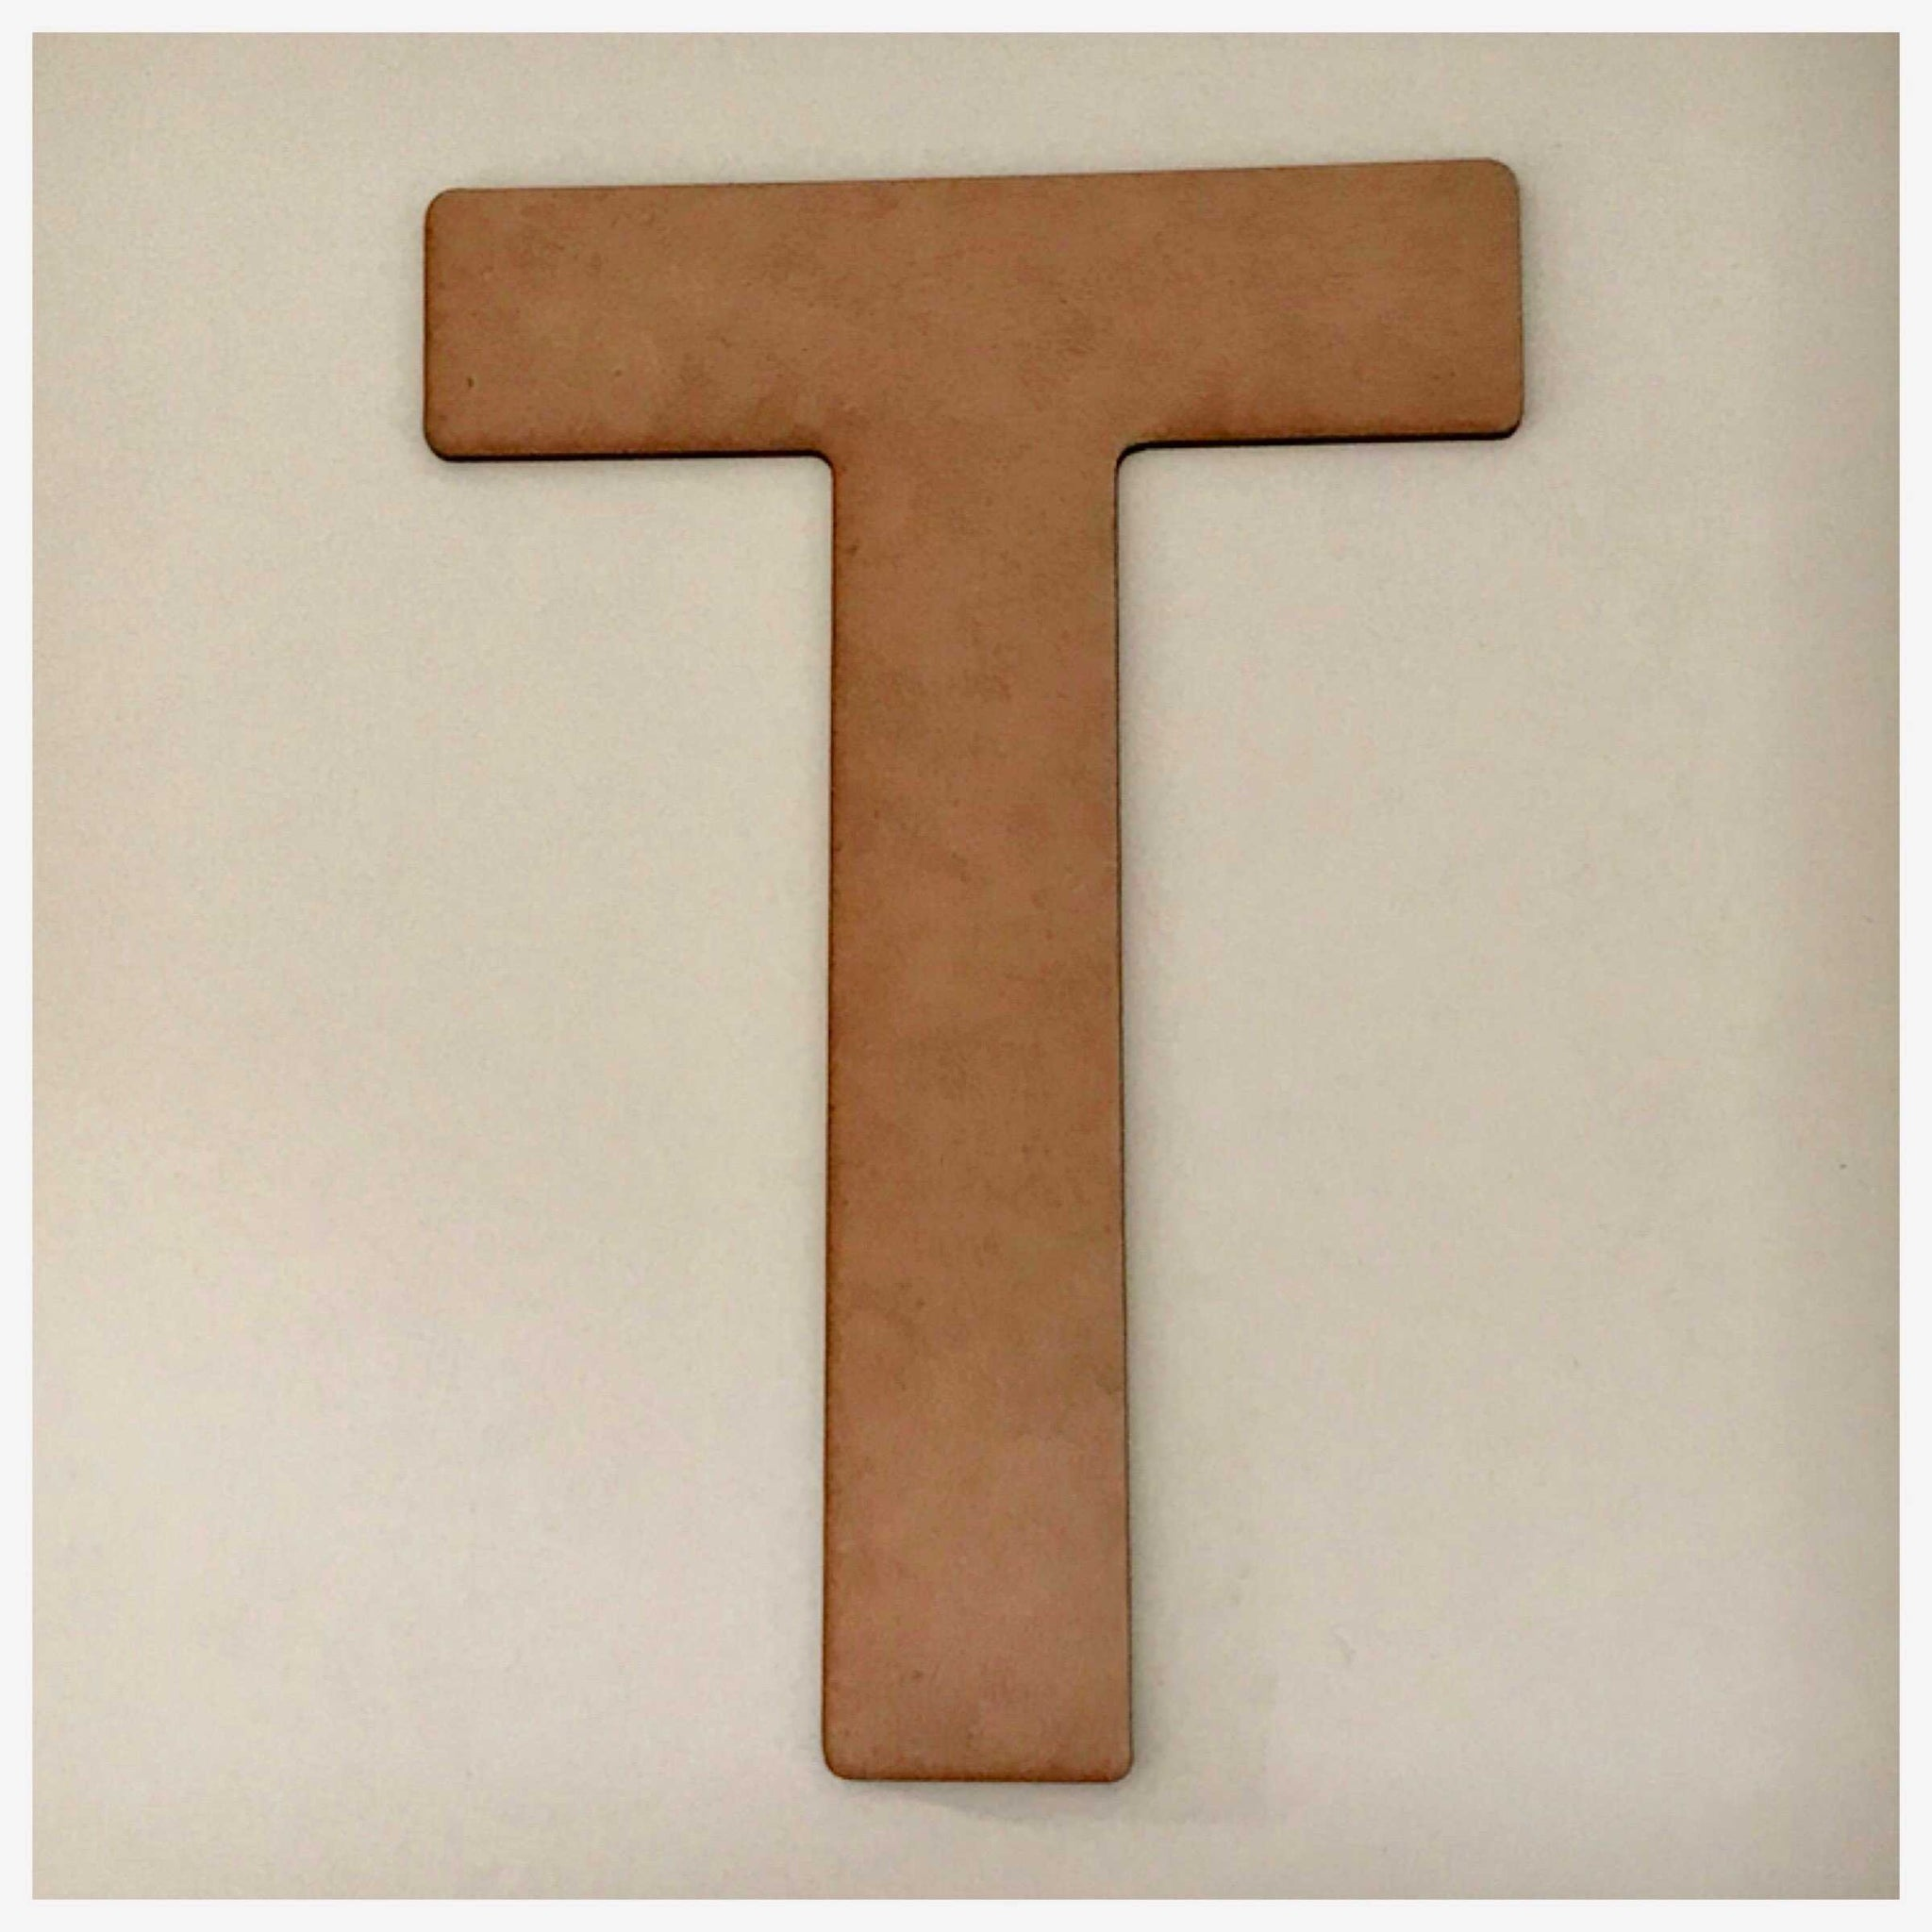 Cross T Egyptian MDF Shape DIY Raw Cut Out Art Religious Craft Decor Other Home Décor The Renmy Store